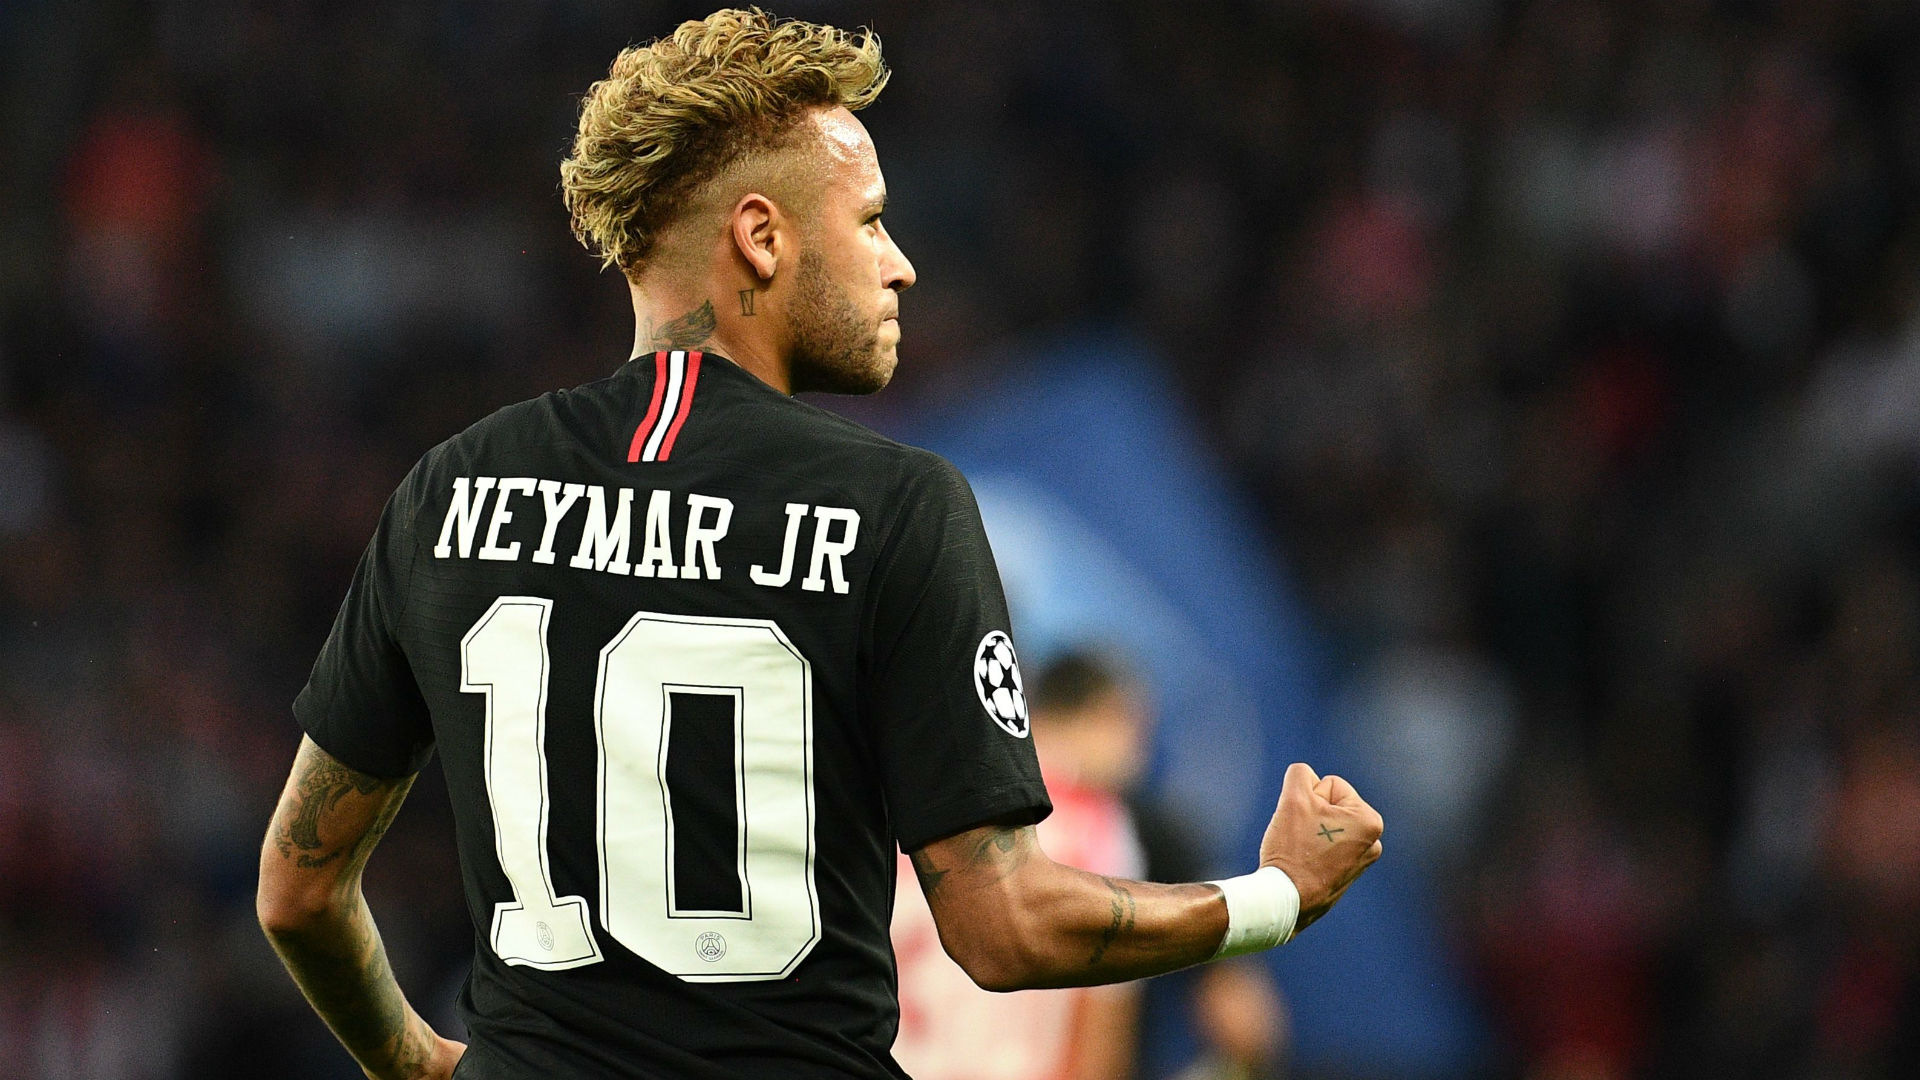 Neymar Rated As The Most Valuable Player In Europe Ahead Of Messi & Ronaldo 1